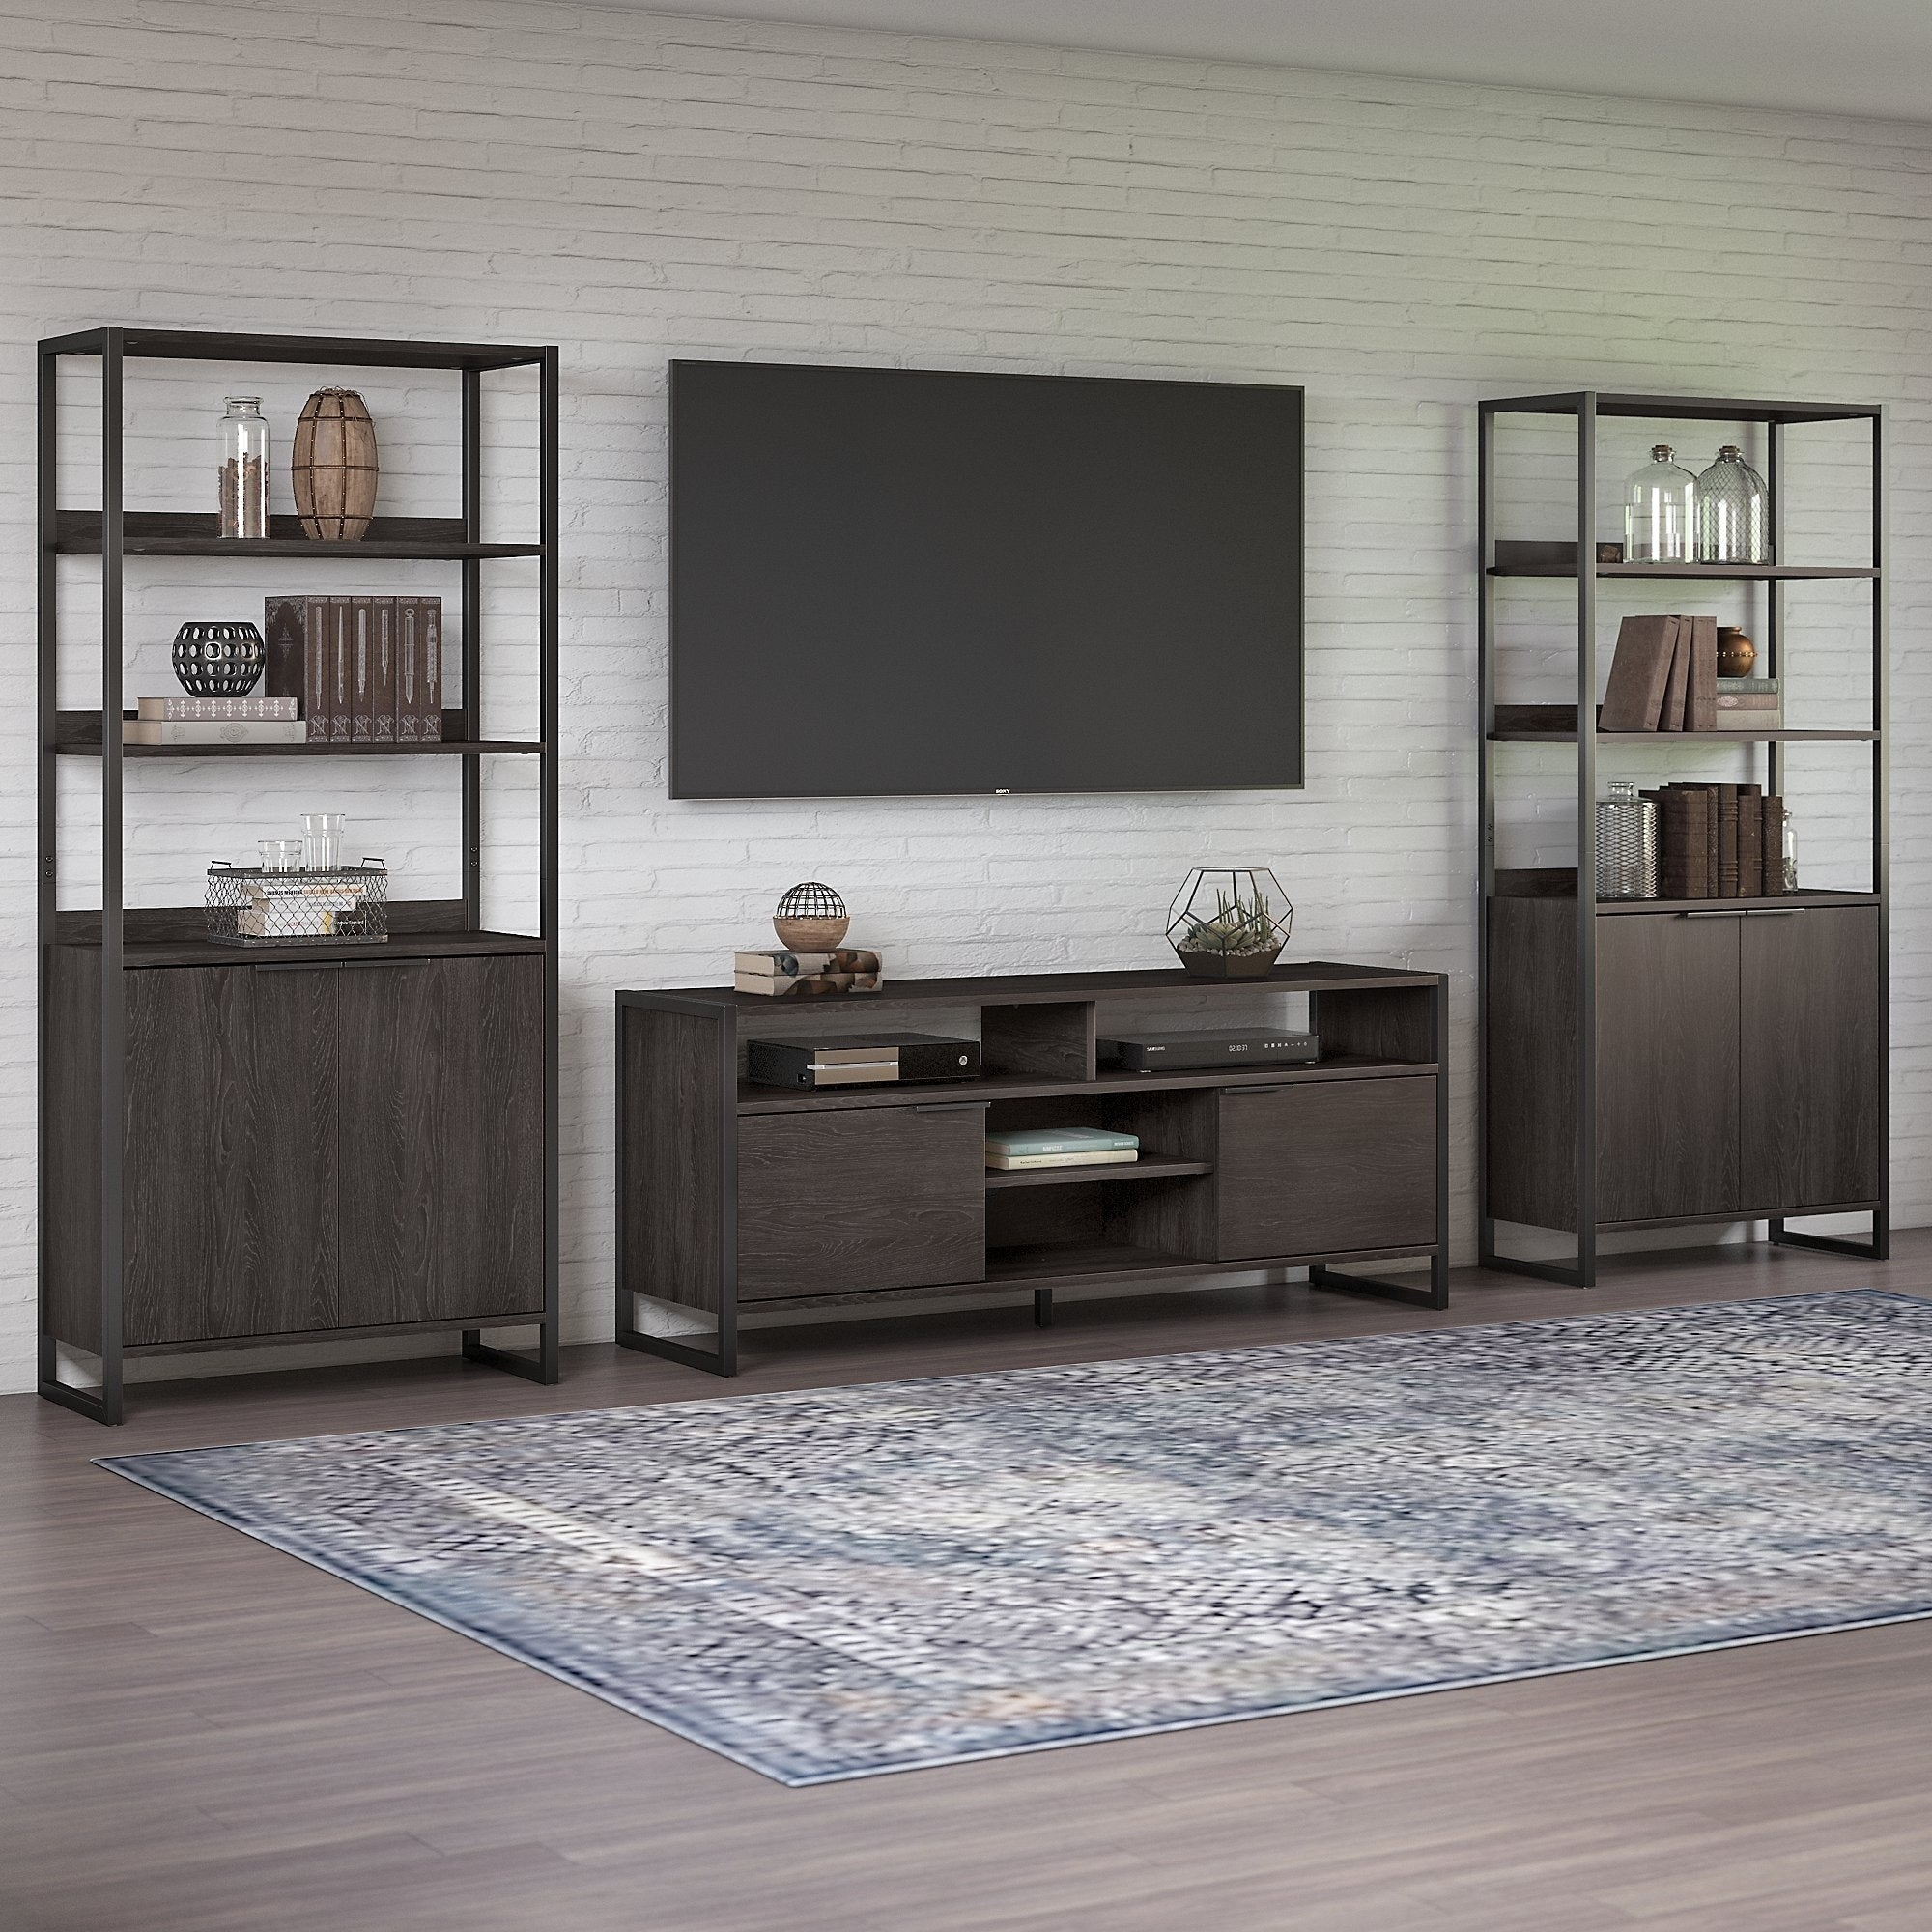 Atria Tv Stand 2 Bookcases From Kathy Ireland Home By Bush Furniture